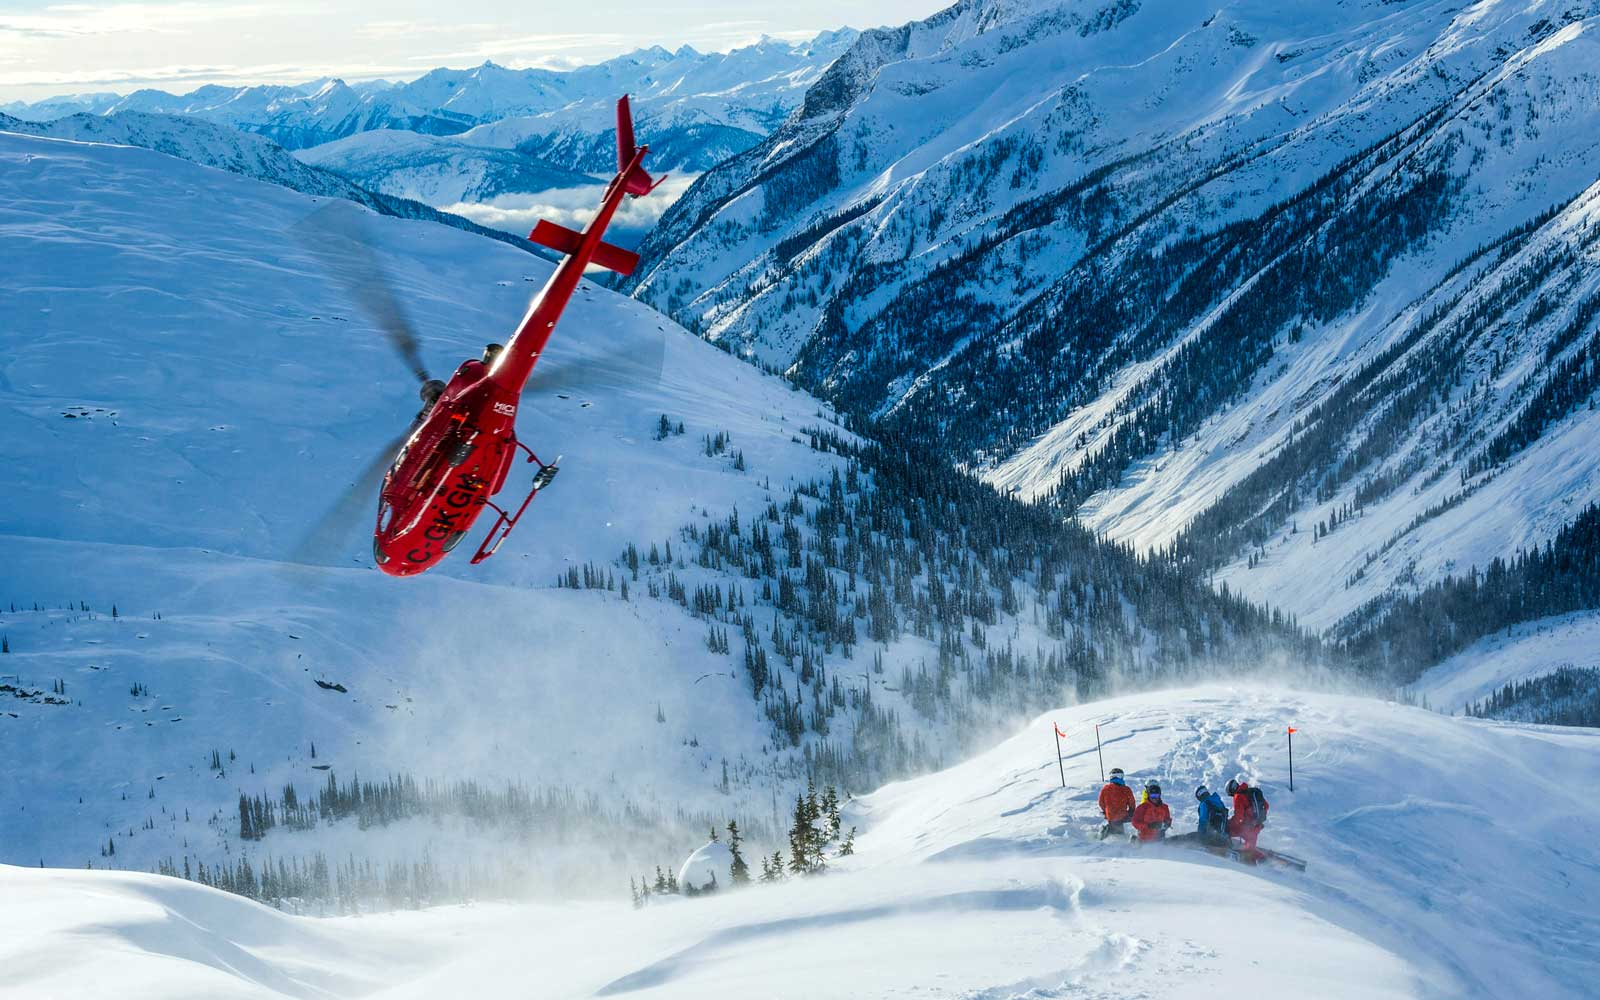 The Best Cat-skiing and Heli-skiing in Canada's British Columbia